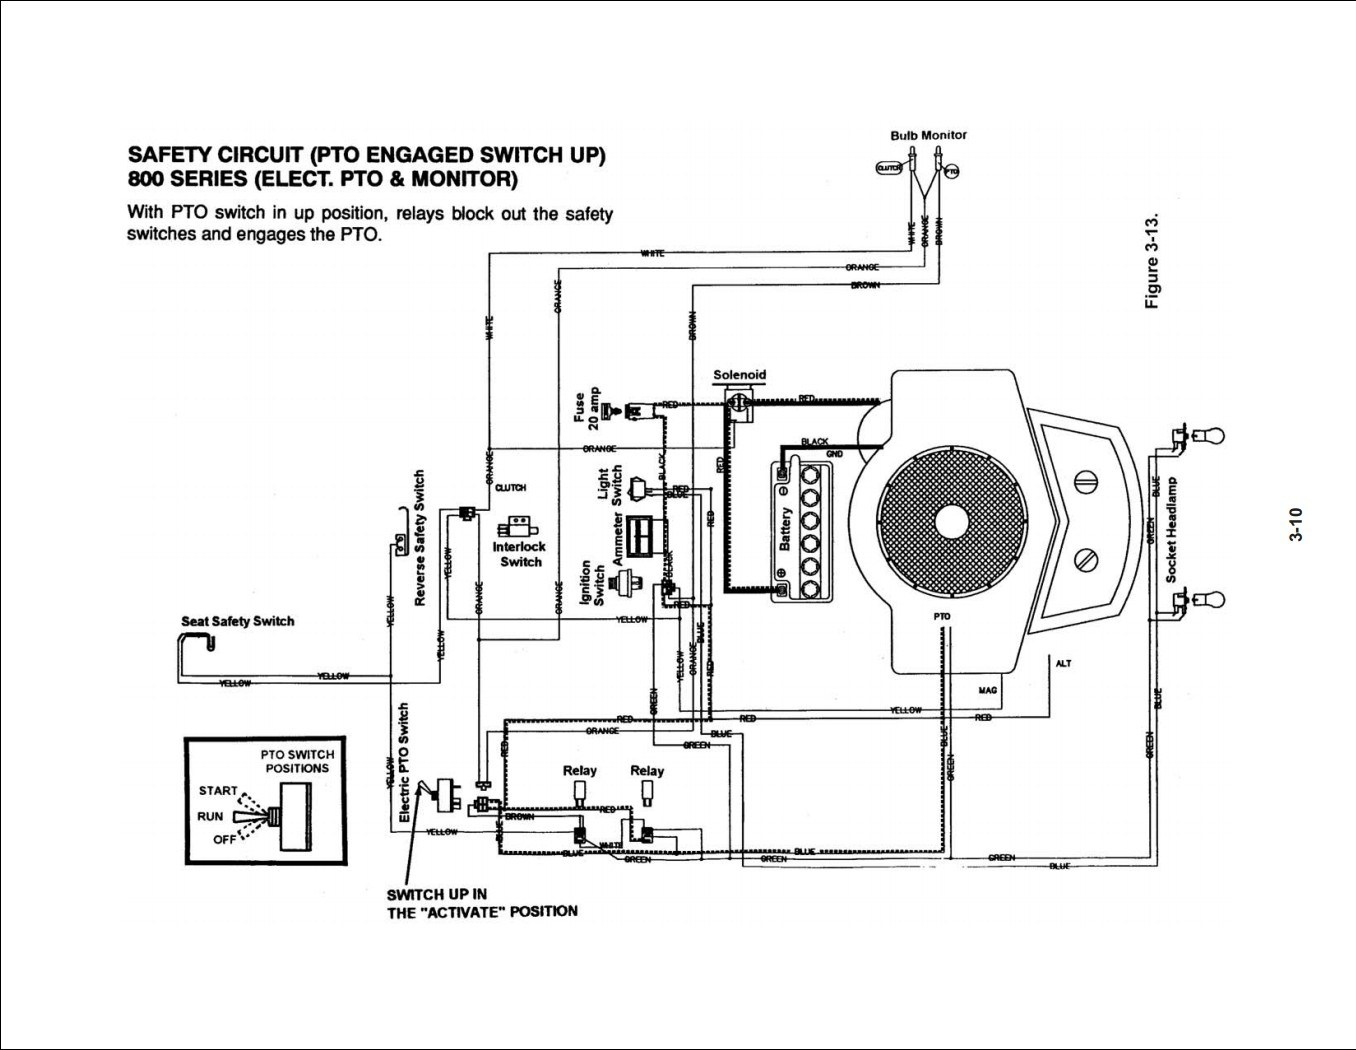 24 Hp Briggs And Stratton Wiring Diagram - Data Wiring Diagram Schematic - Briggs And Straton Wiring Diagram